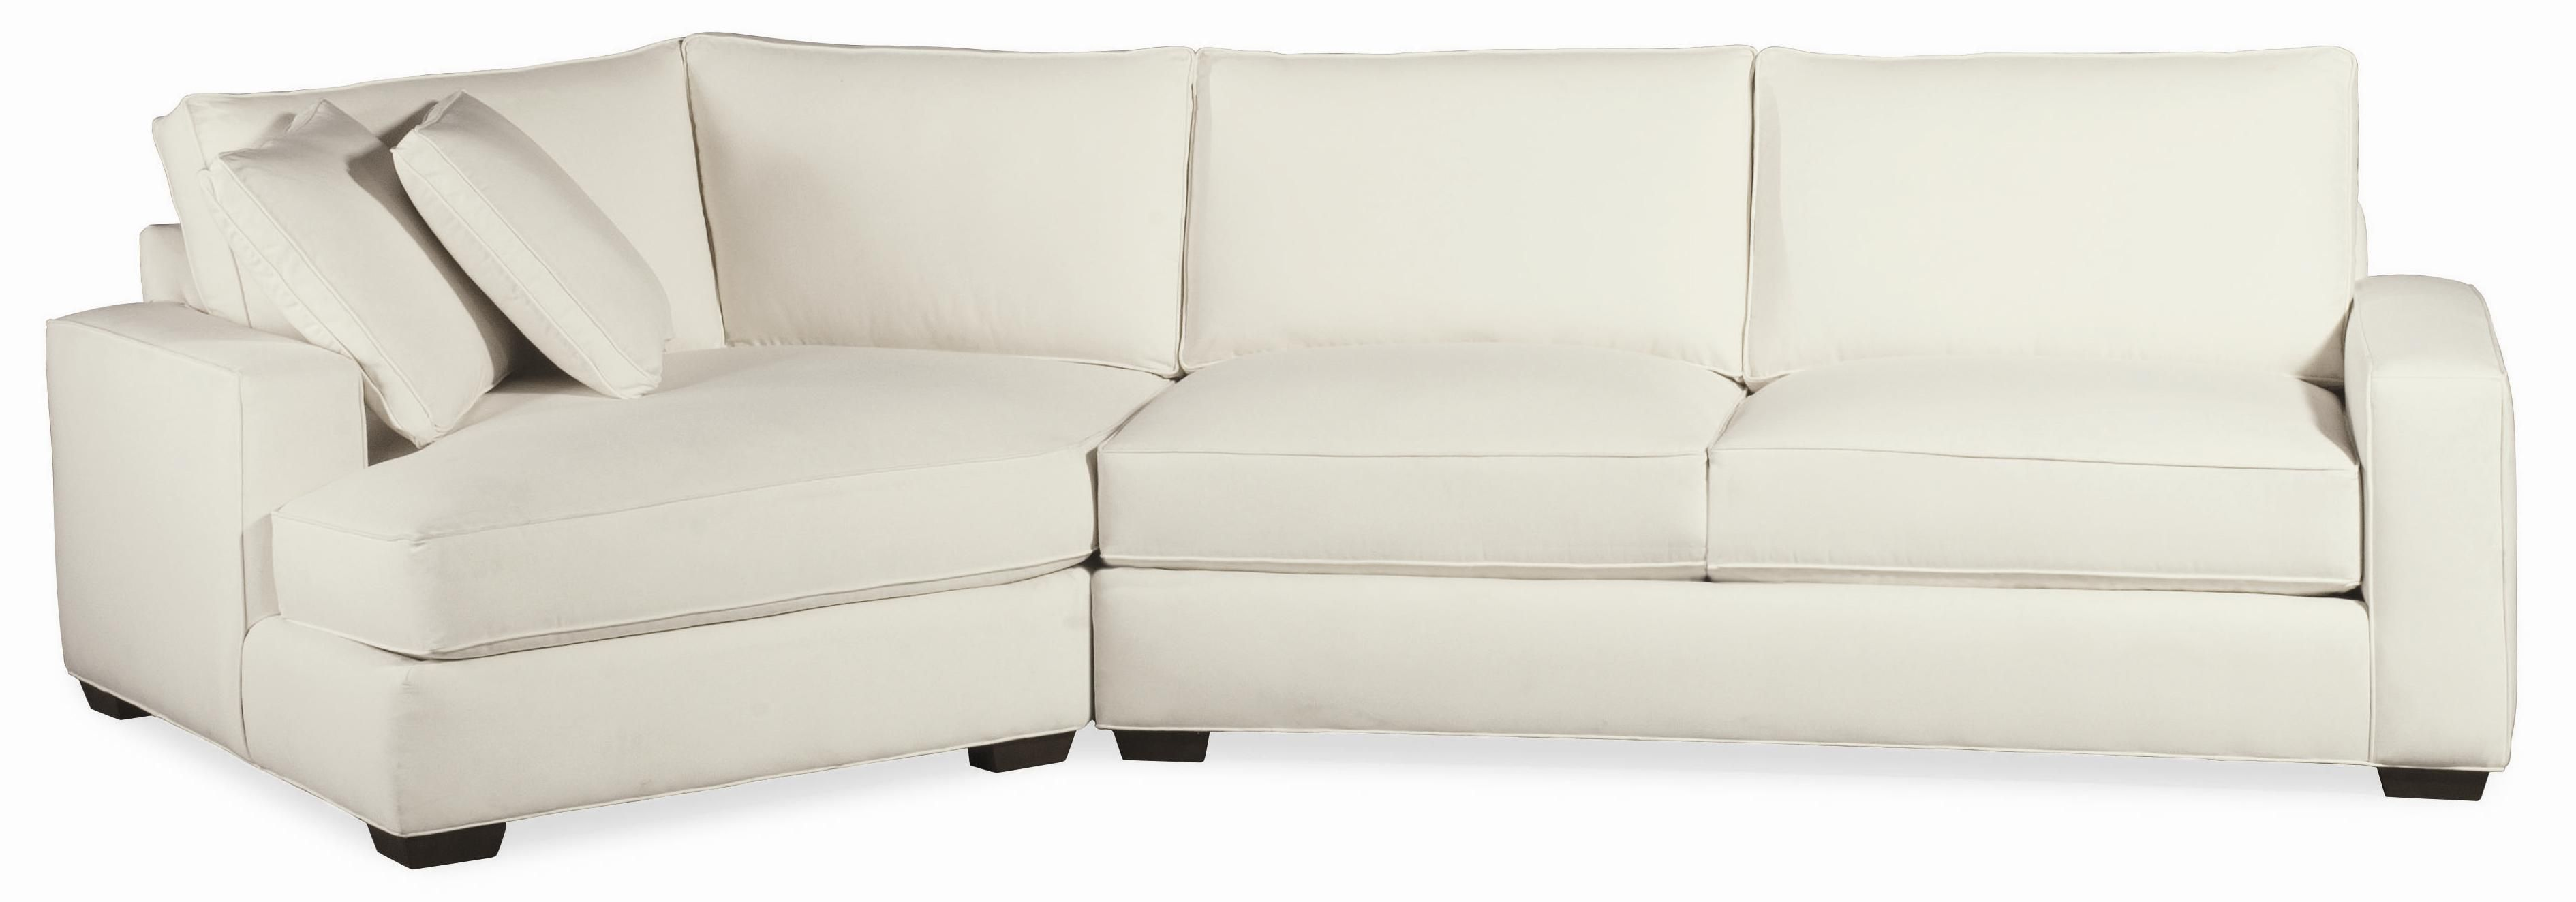 Retreat Contemporary Sectional with Tapered Block Feet by